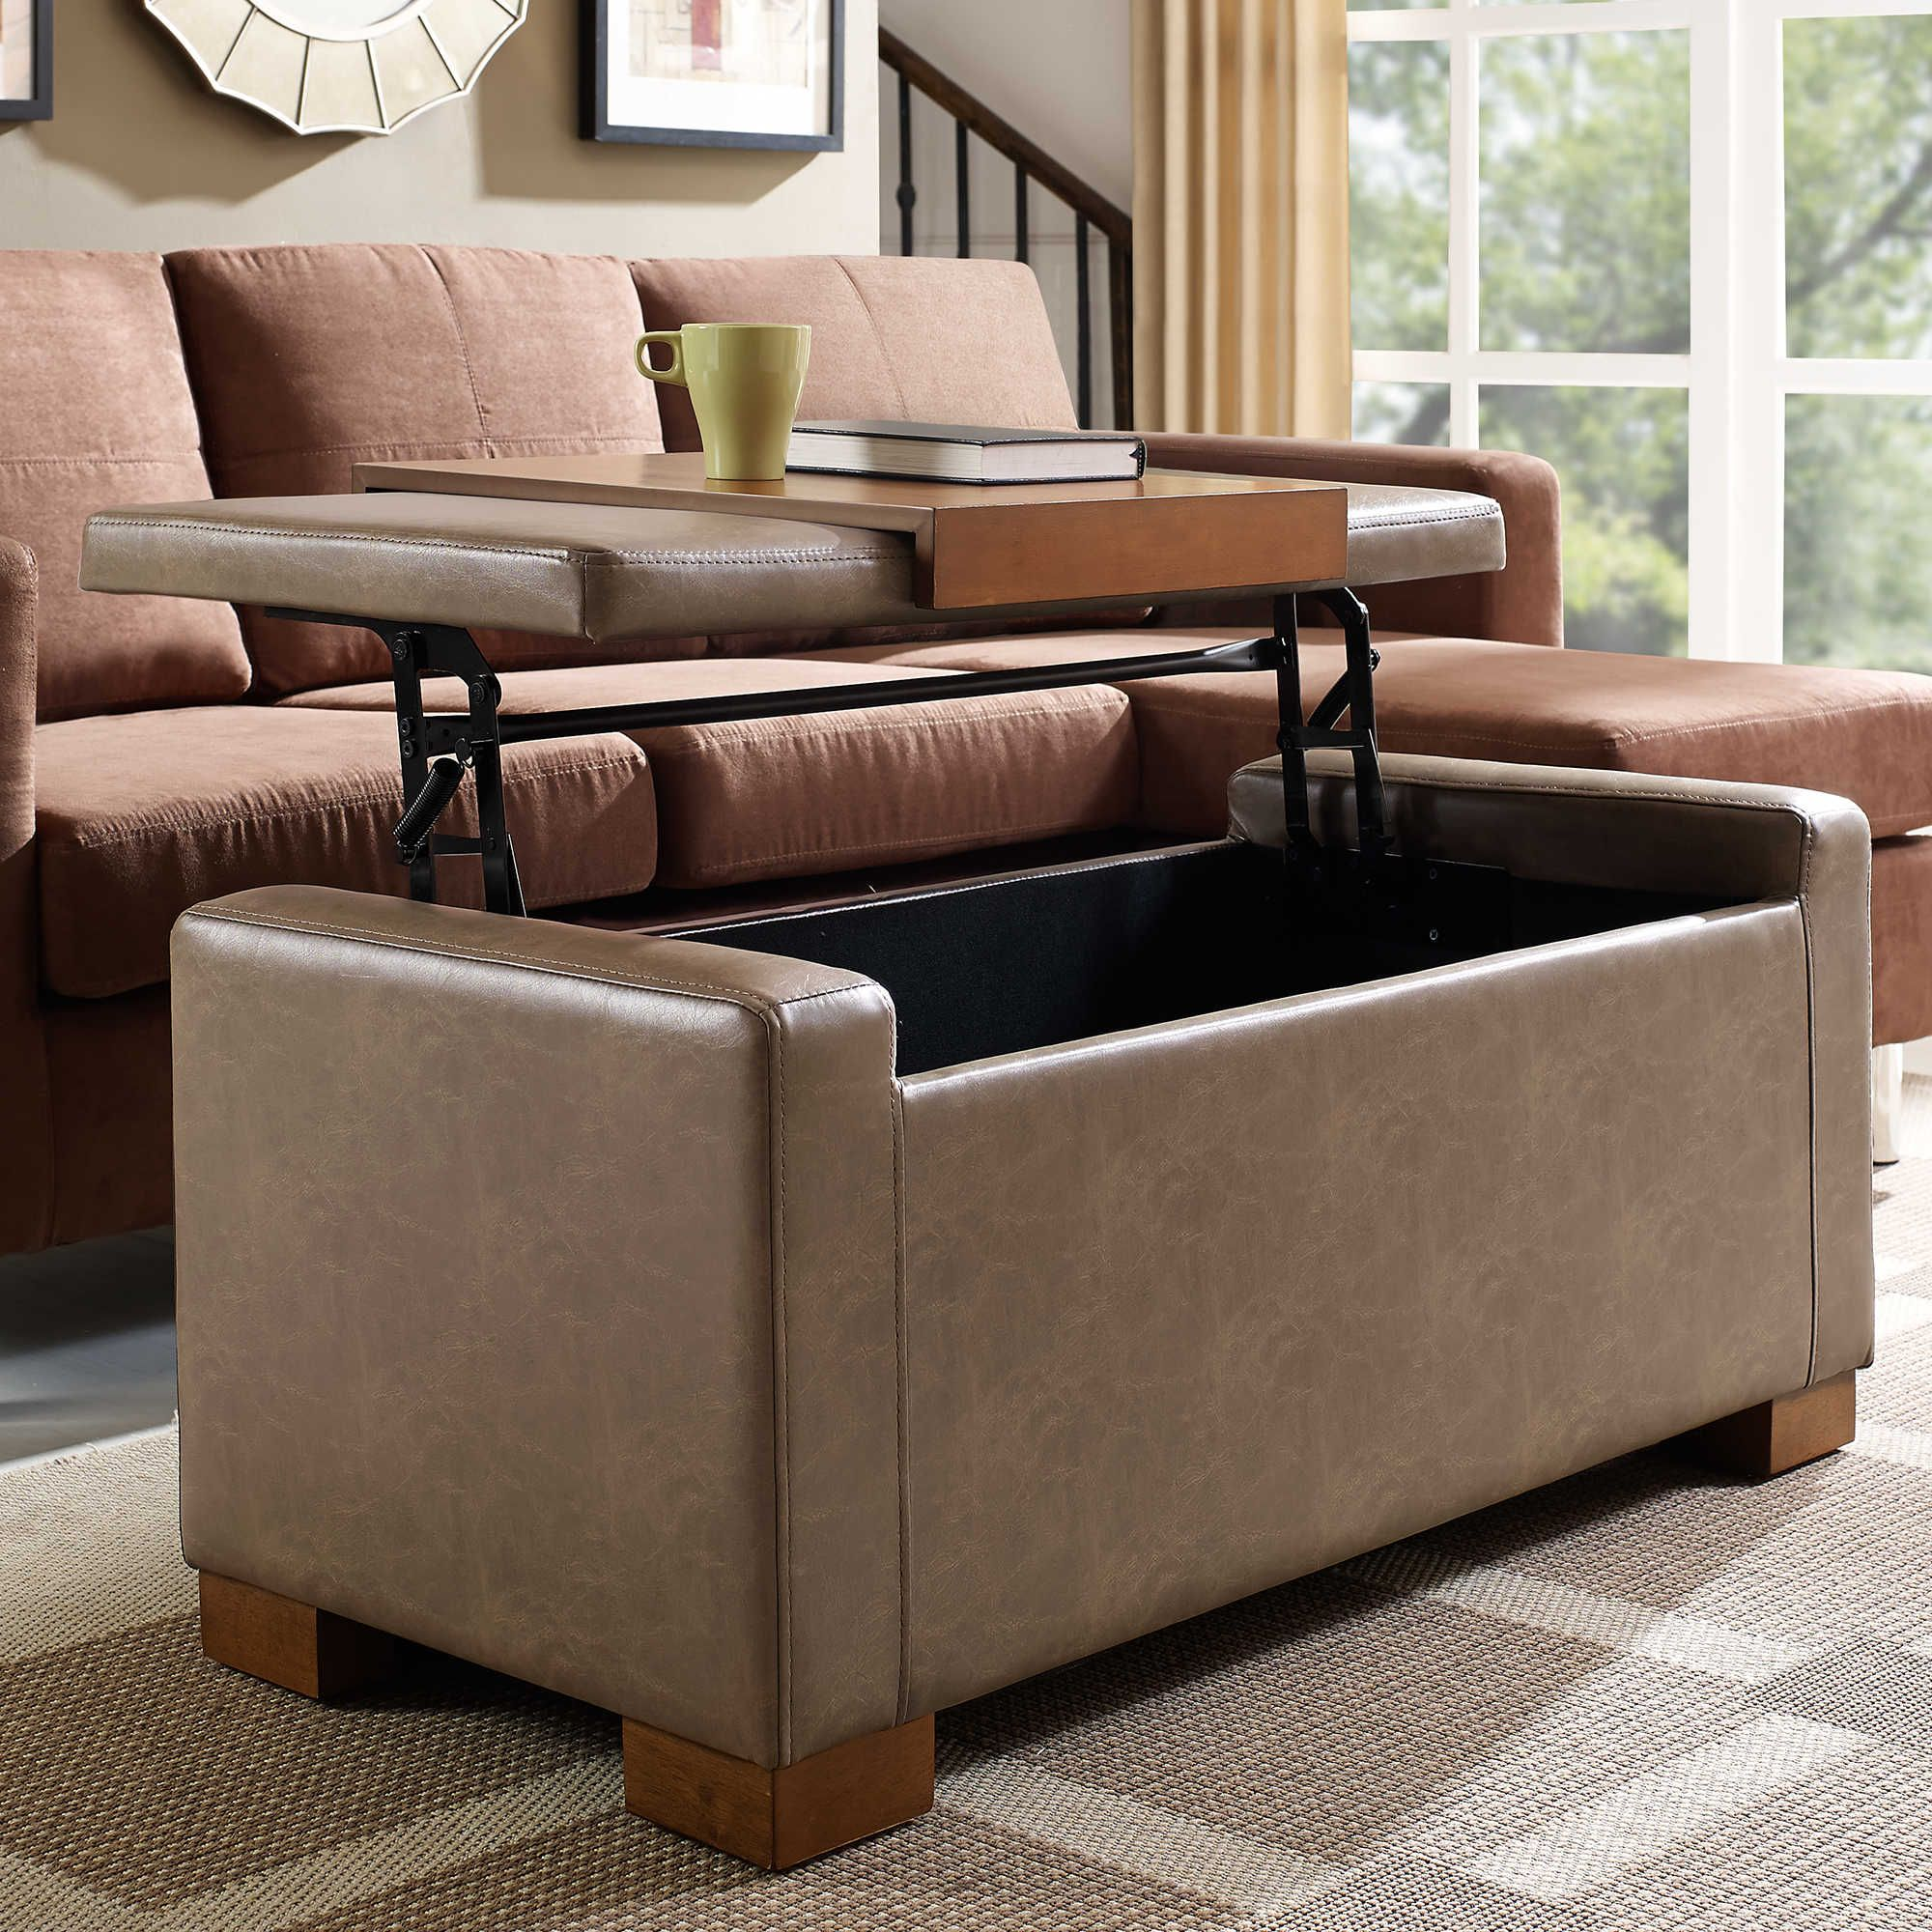 Linon Home Davis Lift Top Storage Ottoman in Pebble